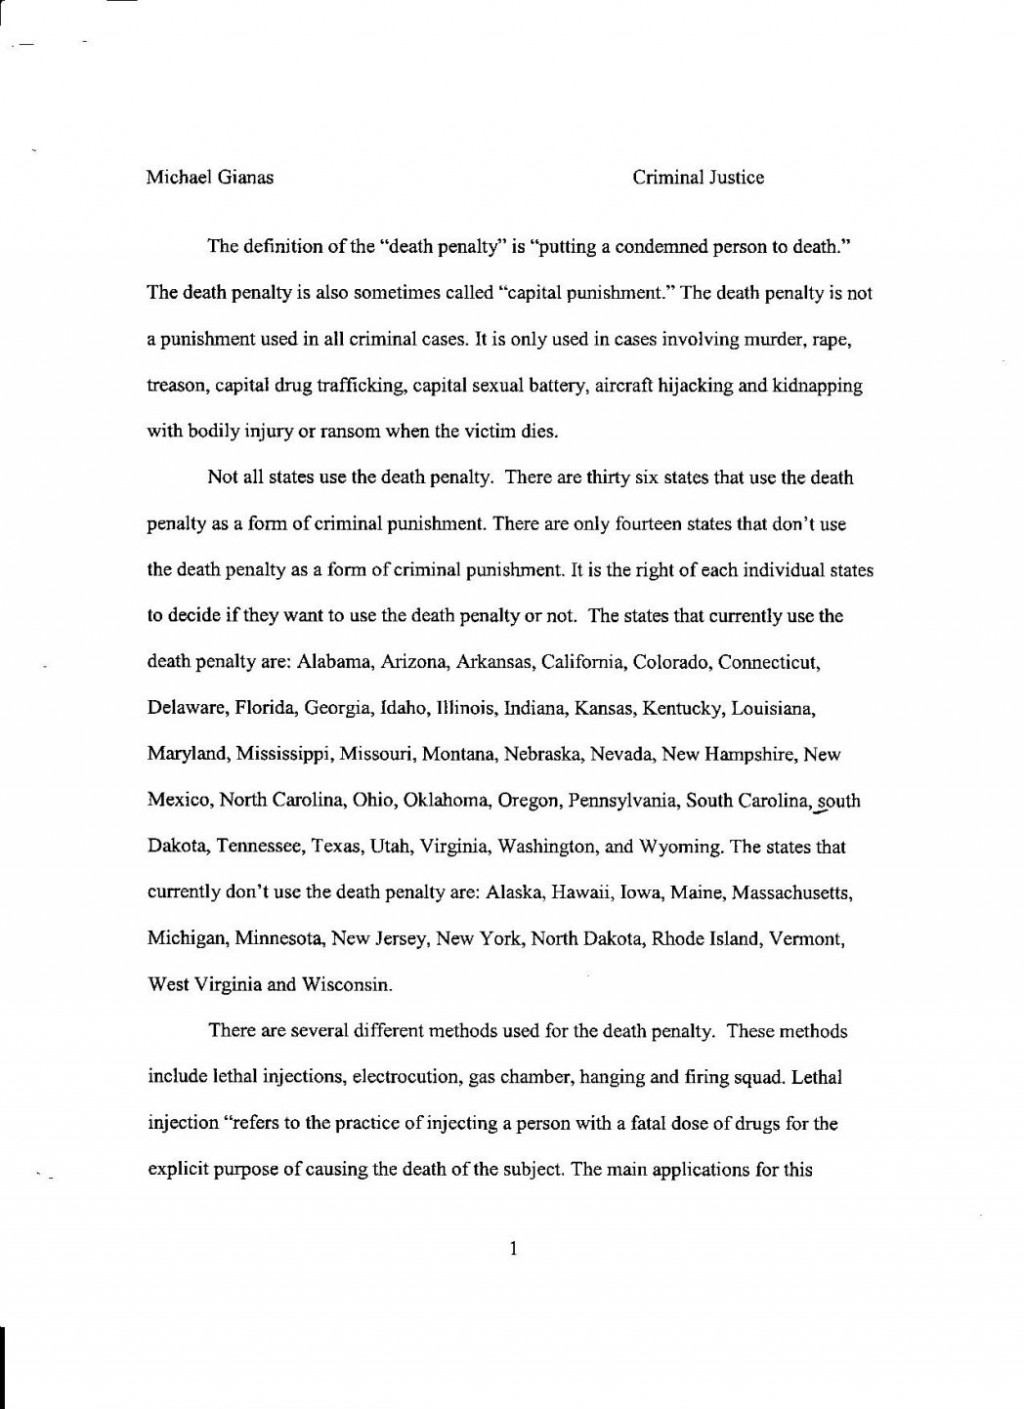 006 Death Penalty Essay Against Best Ideas About Paragraph Persuasive On Pro Why Should Abolished Con In The Philippines Anti 1048x1443 Awful Argumentative Titles Outline Conclusion Large